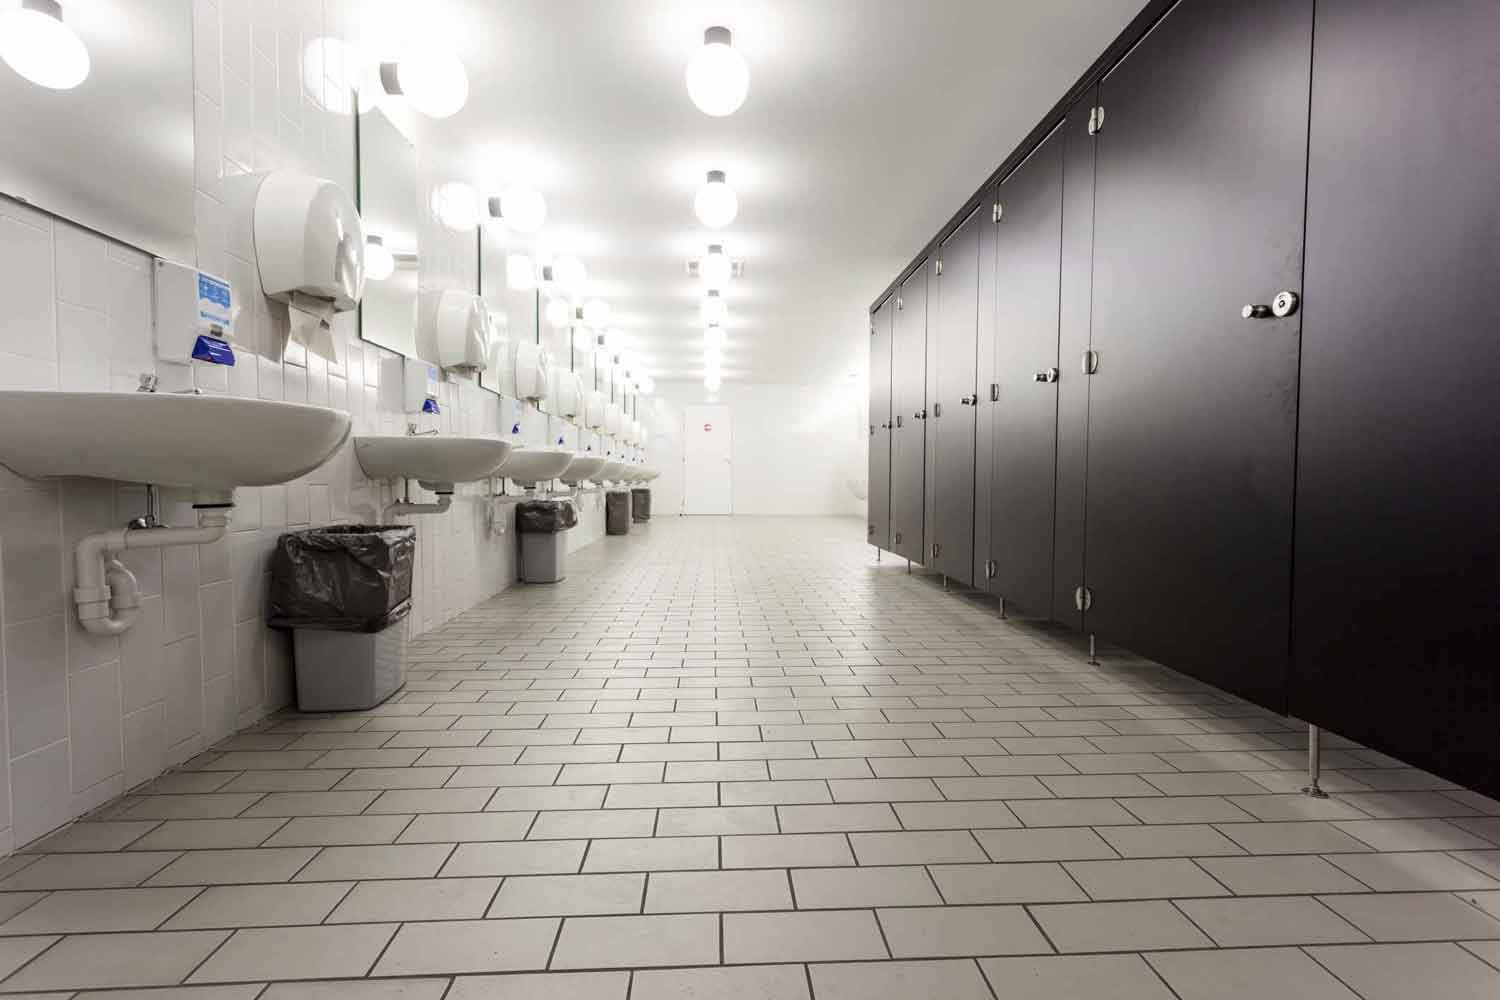 Commercial Cleaning Based in Torrance, CA